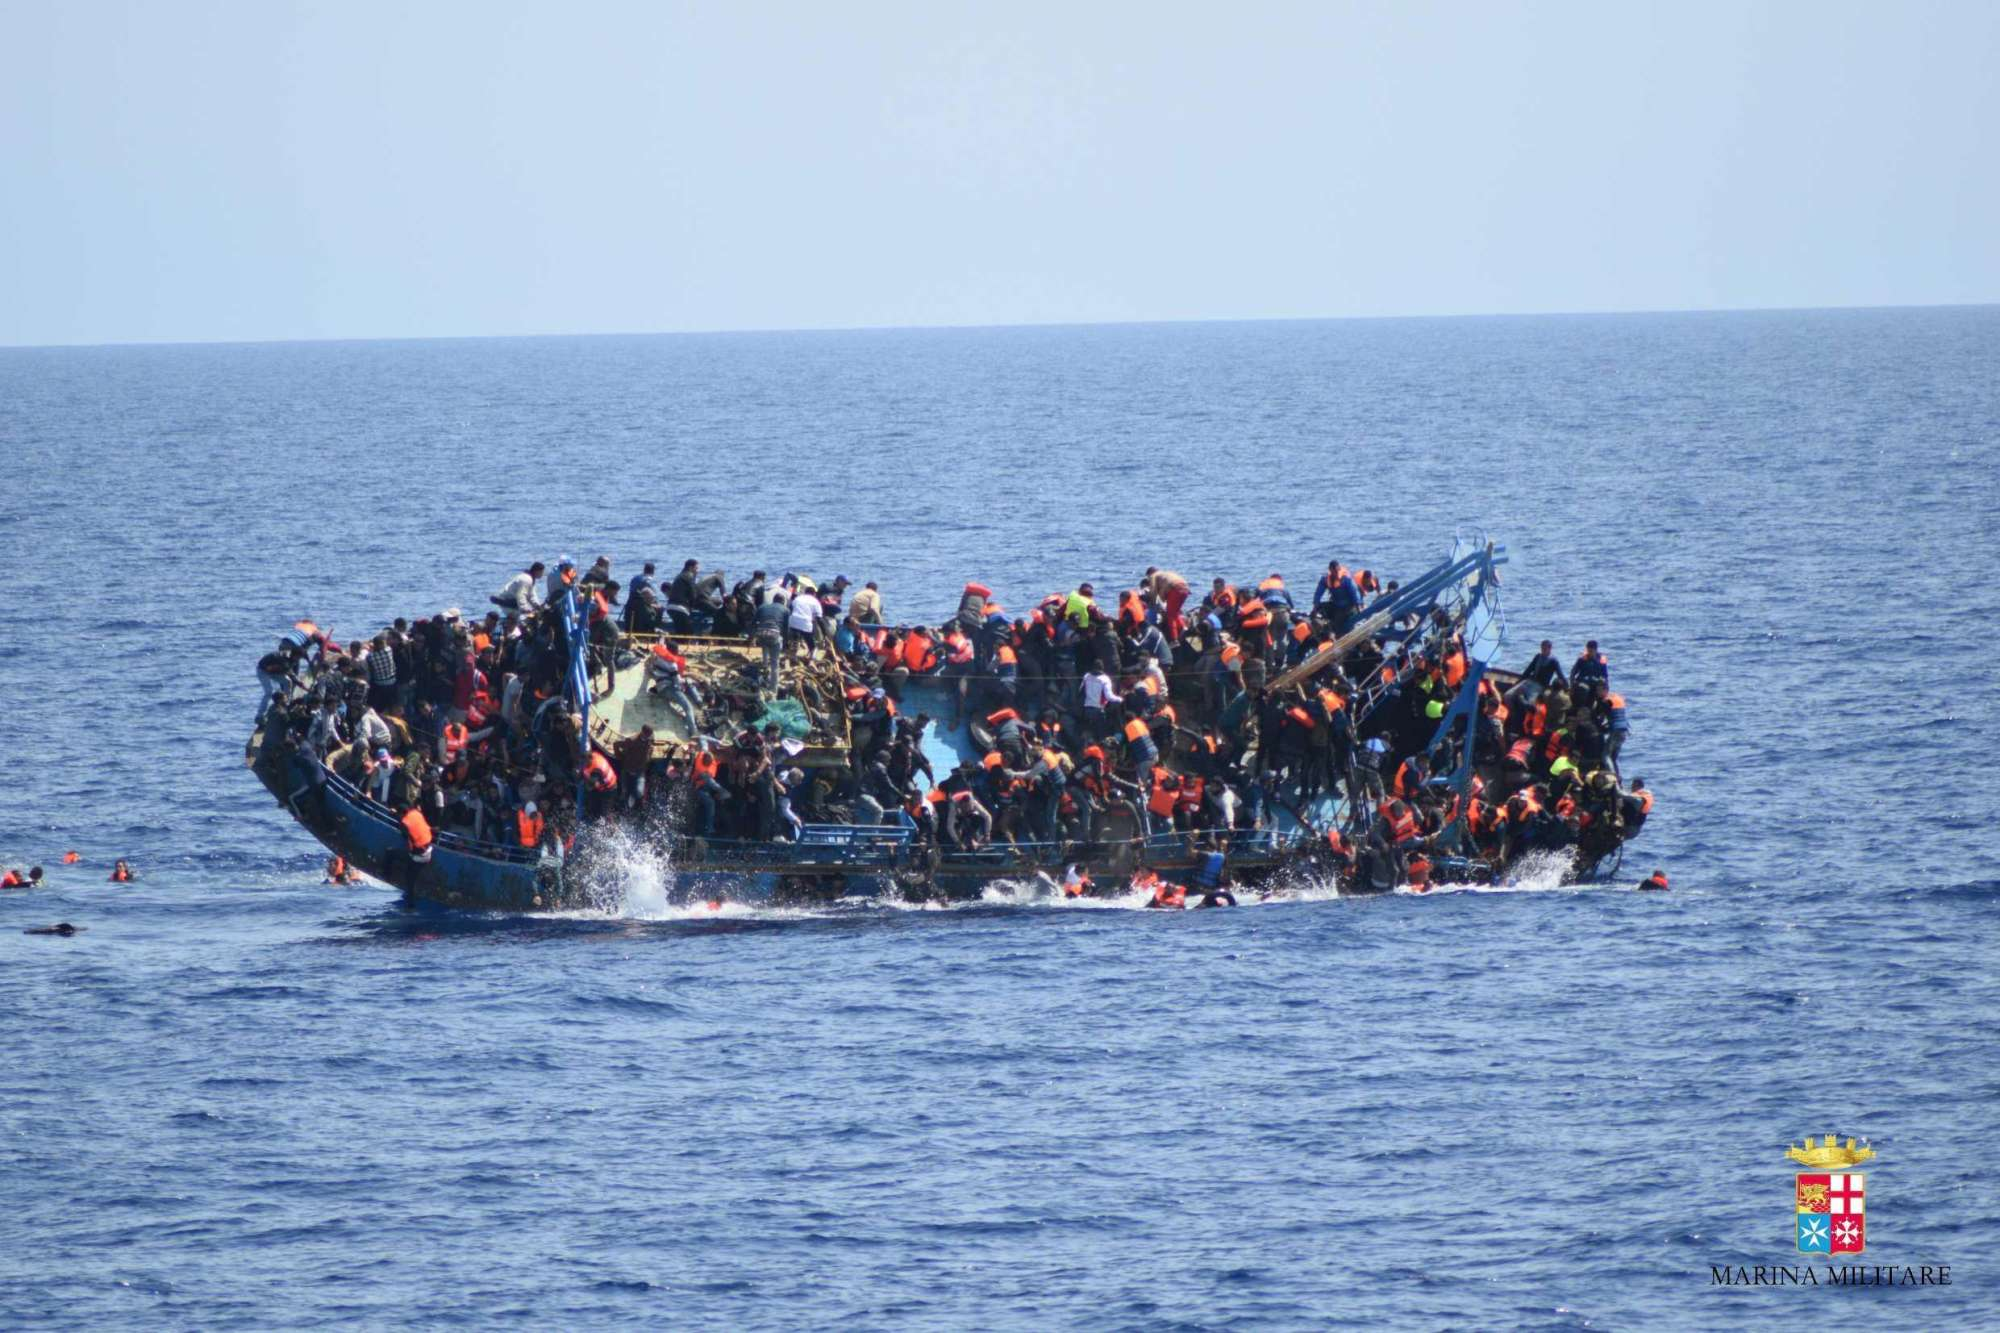 La strategia italiana per i migranti